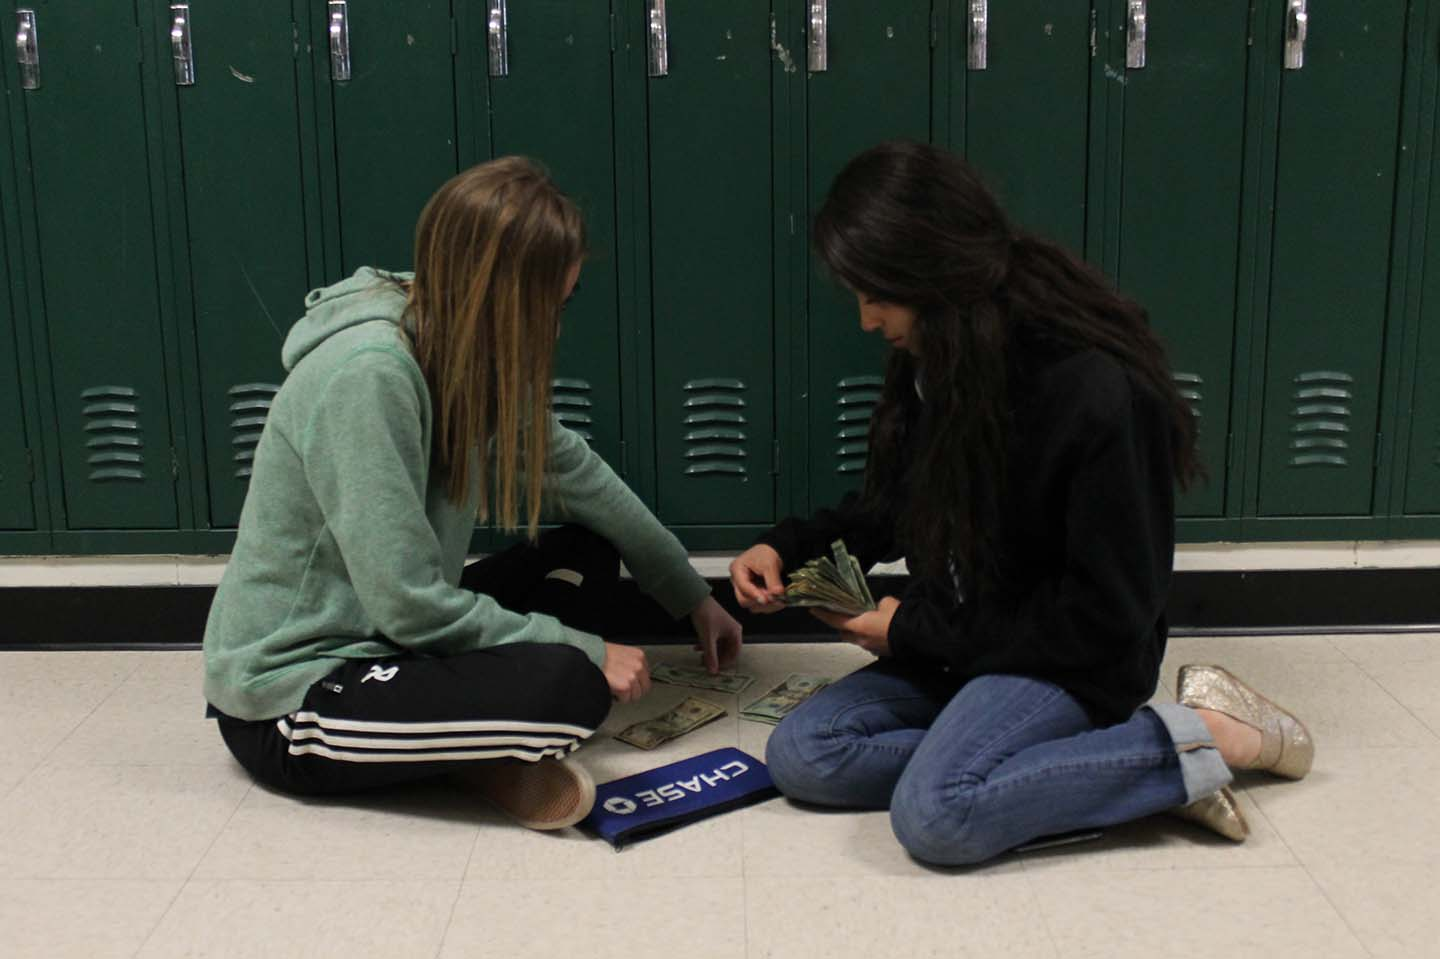 Kaitlyn Grieb and Blanca Blake count the funds raised by the selling of ayuda bands. The funds raised all go to supporting a Guatemalan child's education.